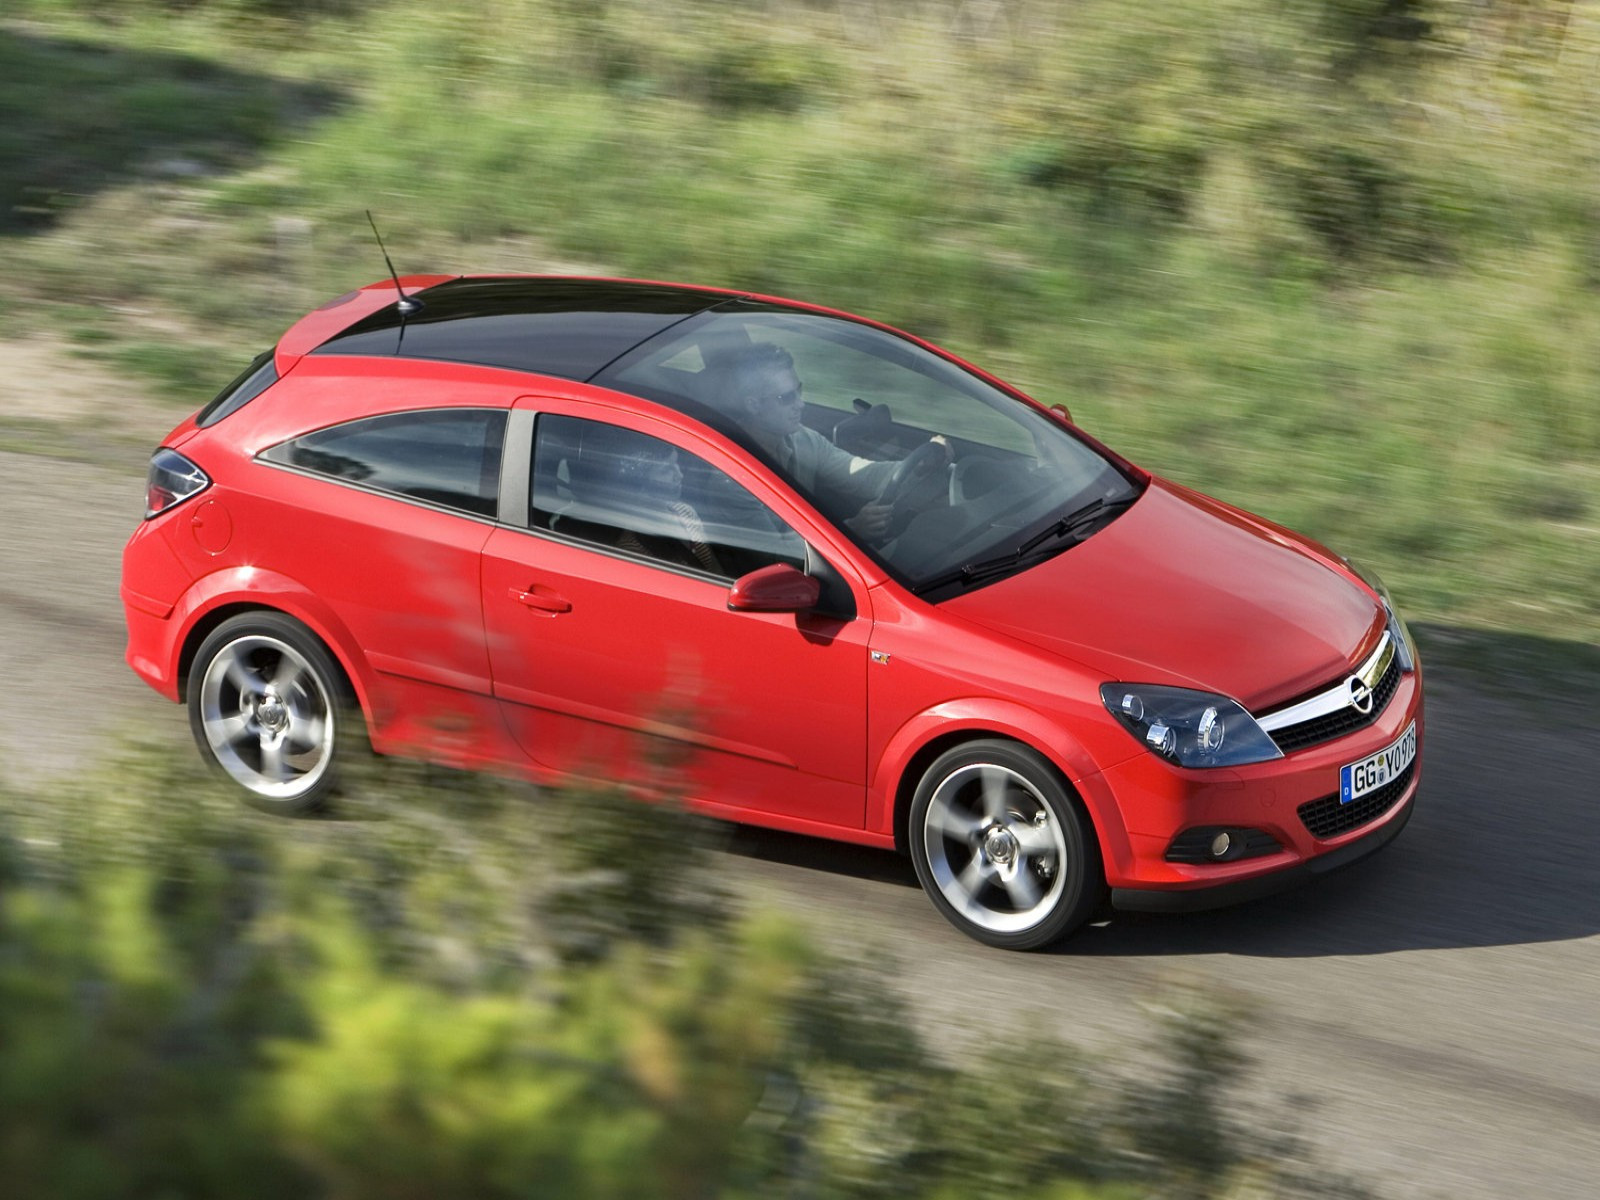 car and car zone opel astra gtc 2007 new cars car reviews car pictures and auto industry trends. Black Bedroom Furniture Sets. Home Design Ideas